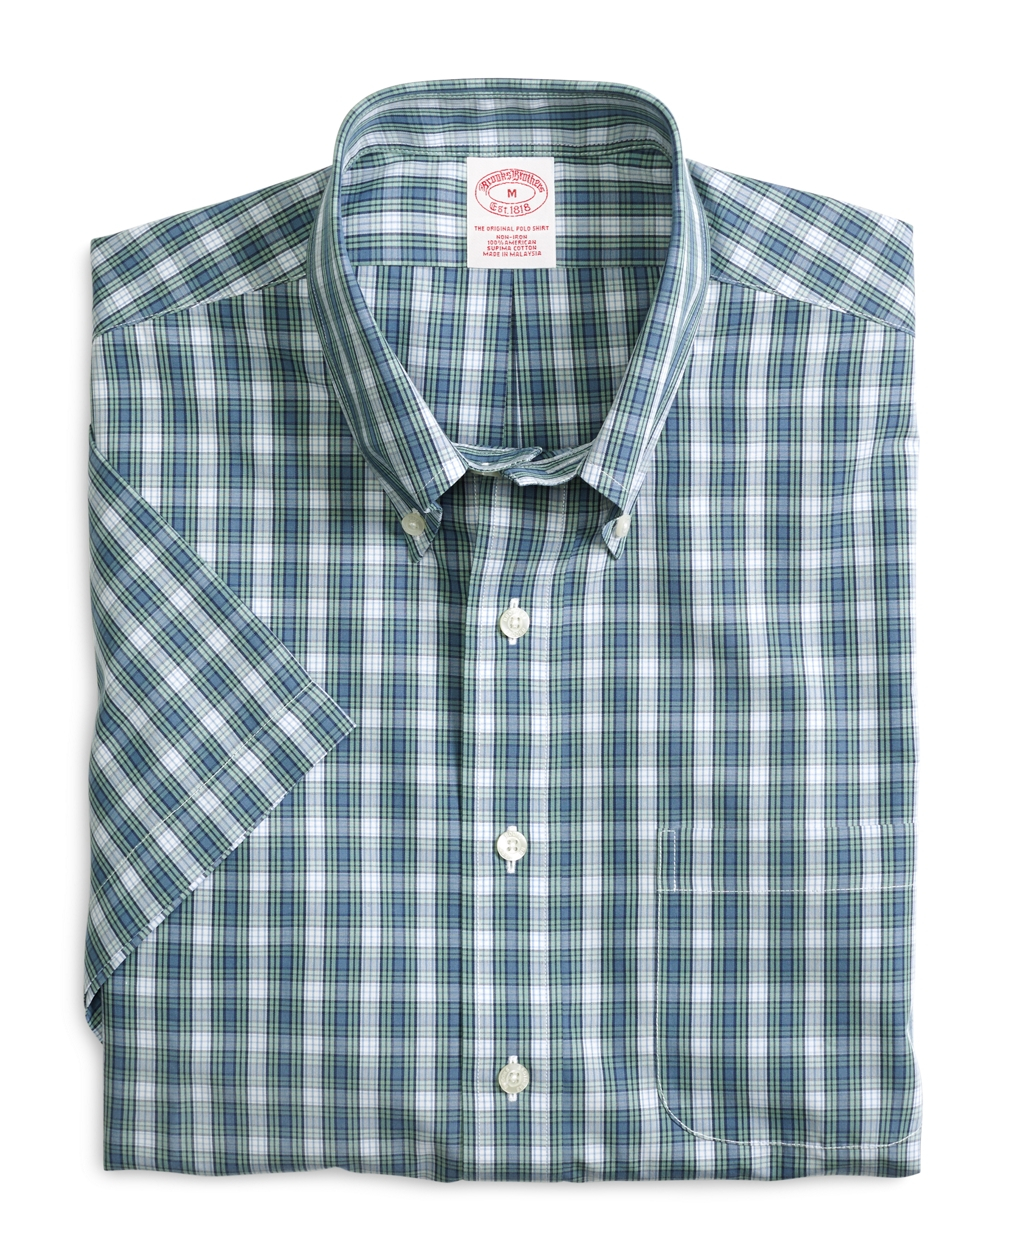 Brooks brothers non iron slim fit check short sleeve sport for Brooks brothers non iron shirts review